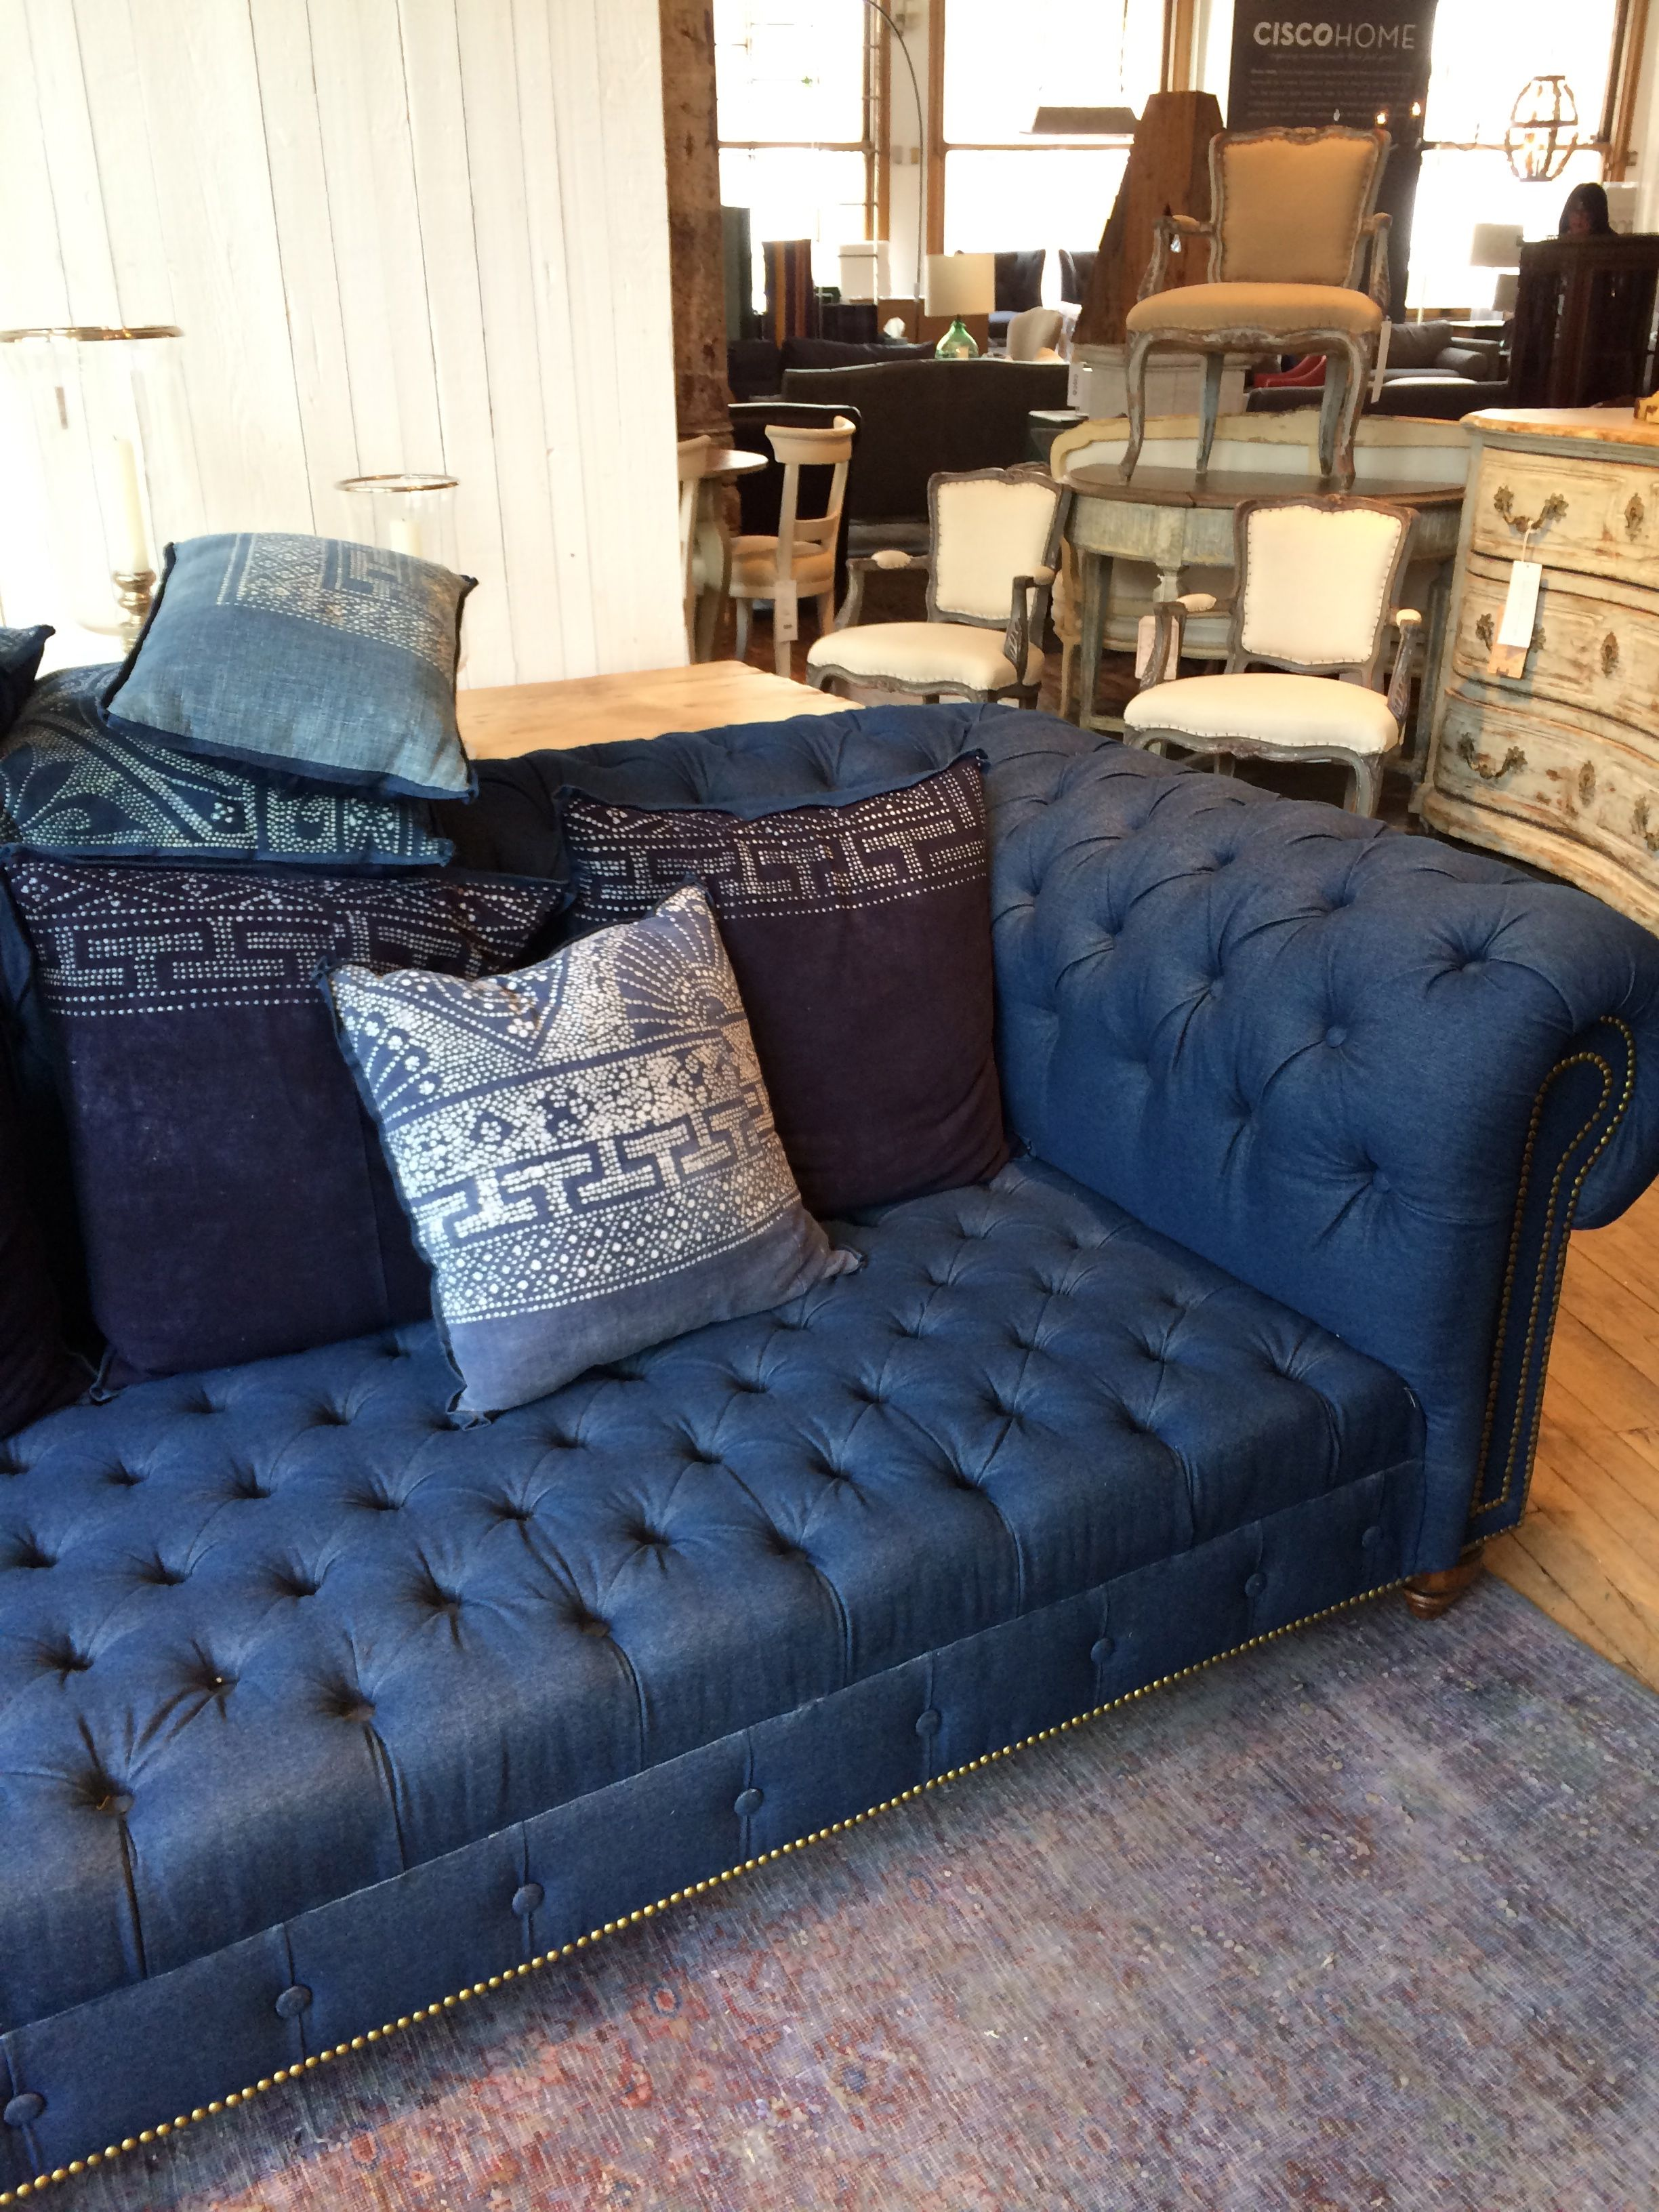 Denim Sofa Denim Sofa Now This Is A Denim Sofa I Can Get On Board With Abc